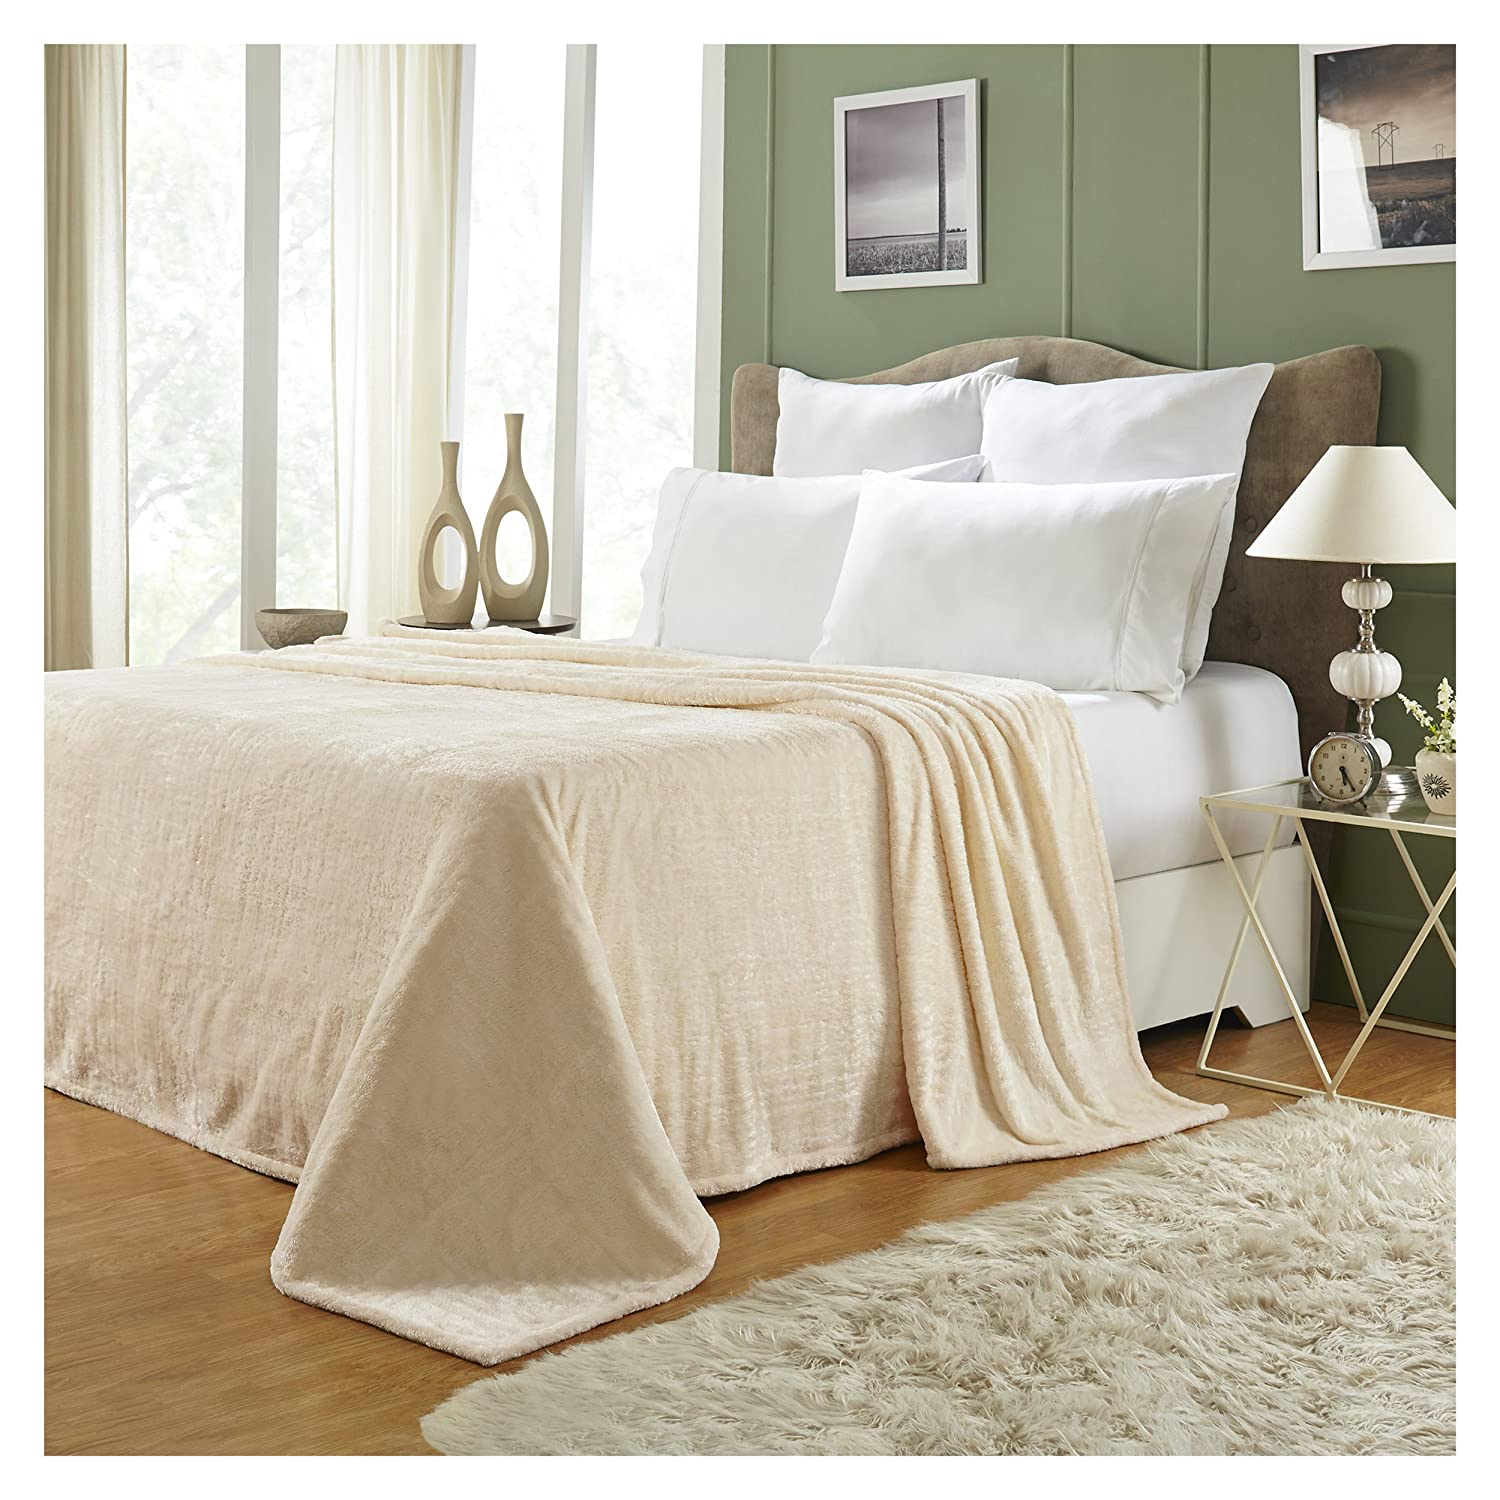 Superior Quality All-Season King BLANKET/_FLE KG CO-AMZ Coral Plush Silky Soft Fleece Blankets and Throws